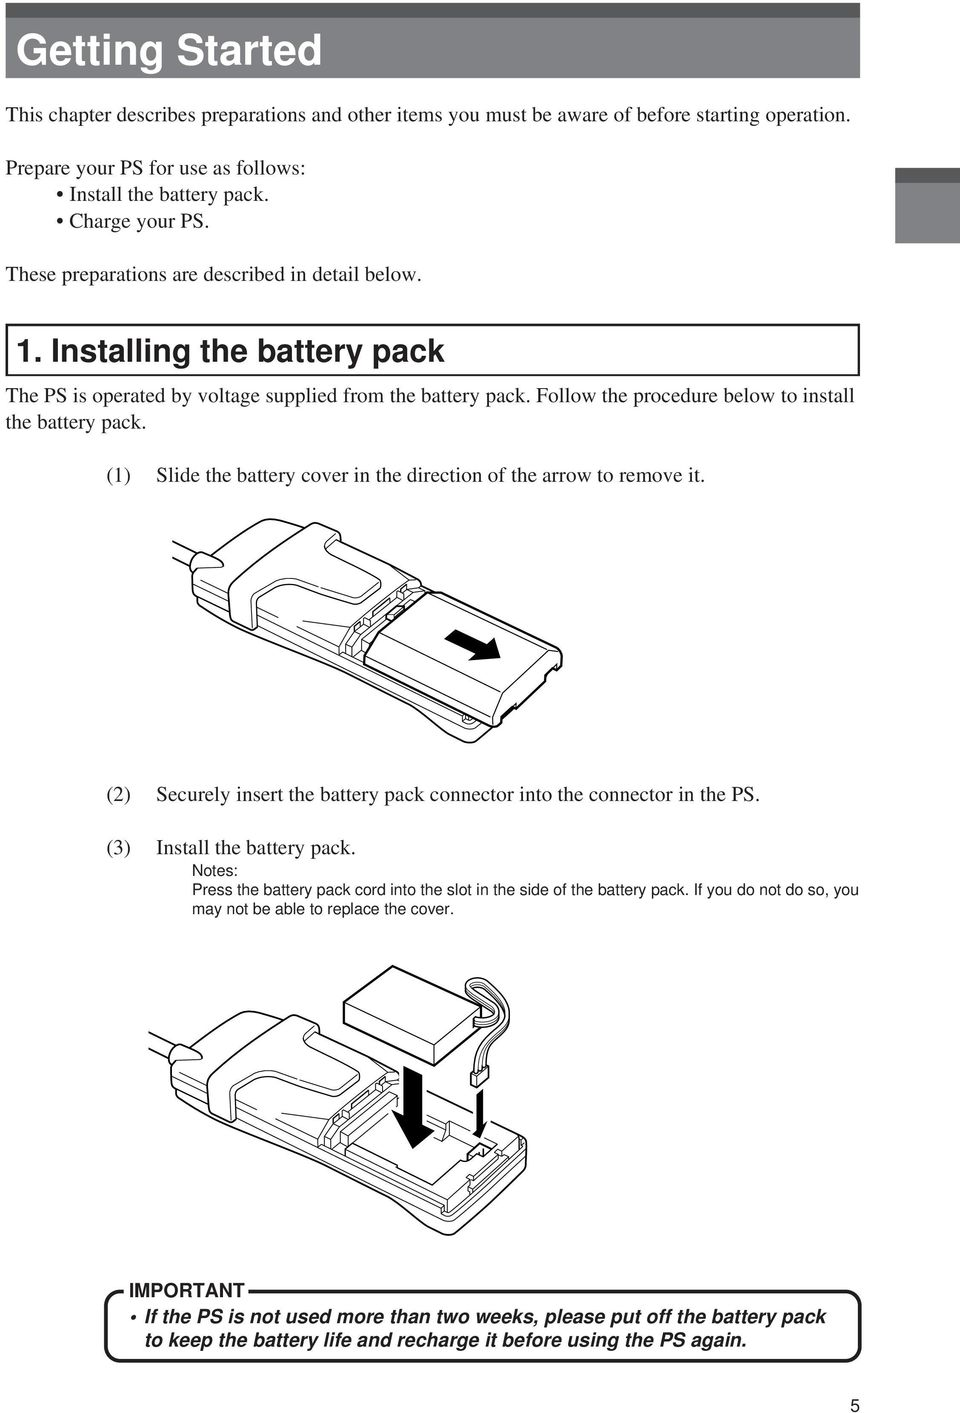 (1) Slide the battery cover in the direction of the arrow to remove it. (2) Securely insert the battery pack connector into the connector in the PS. (3) Install the battery pack.